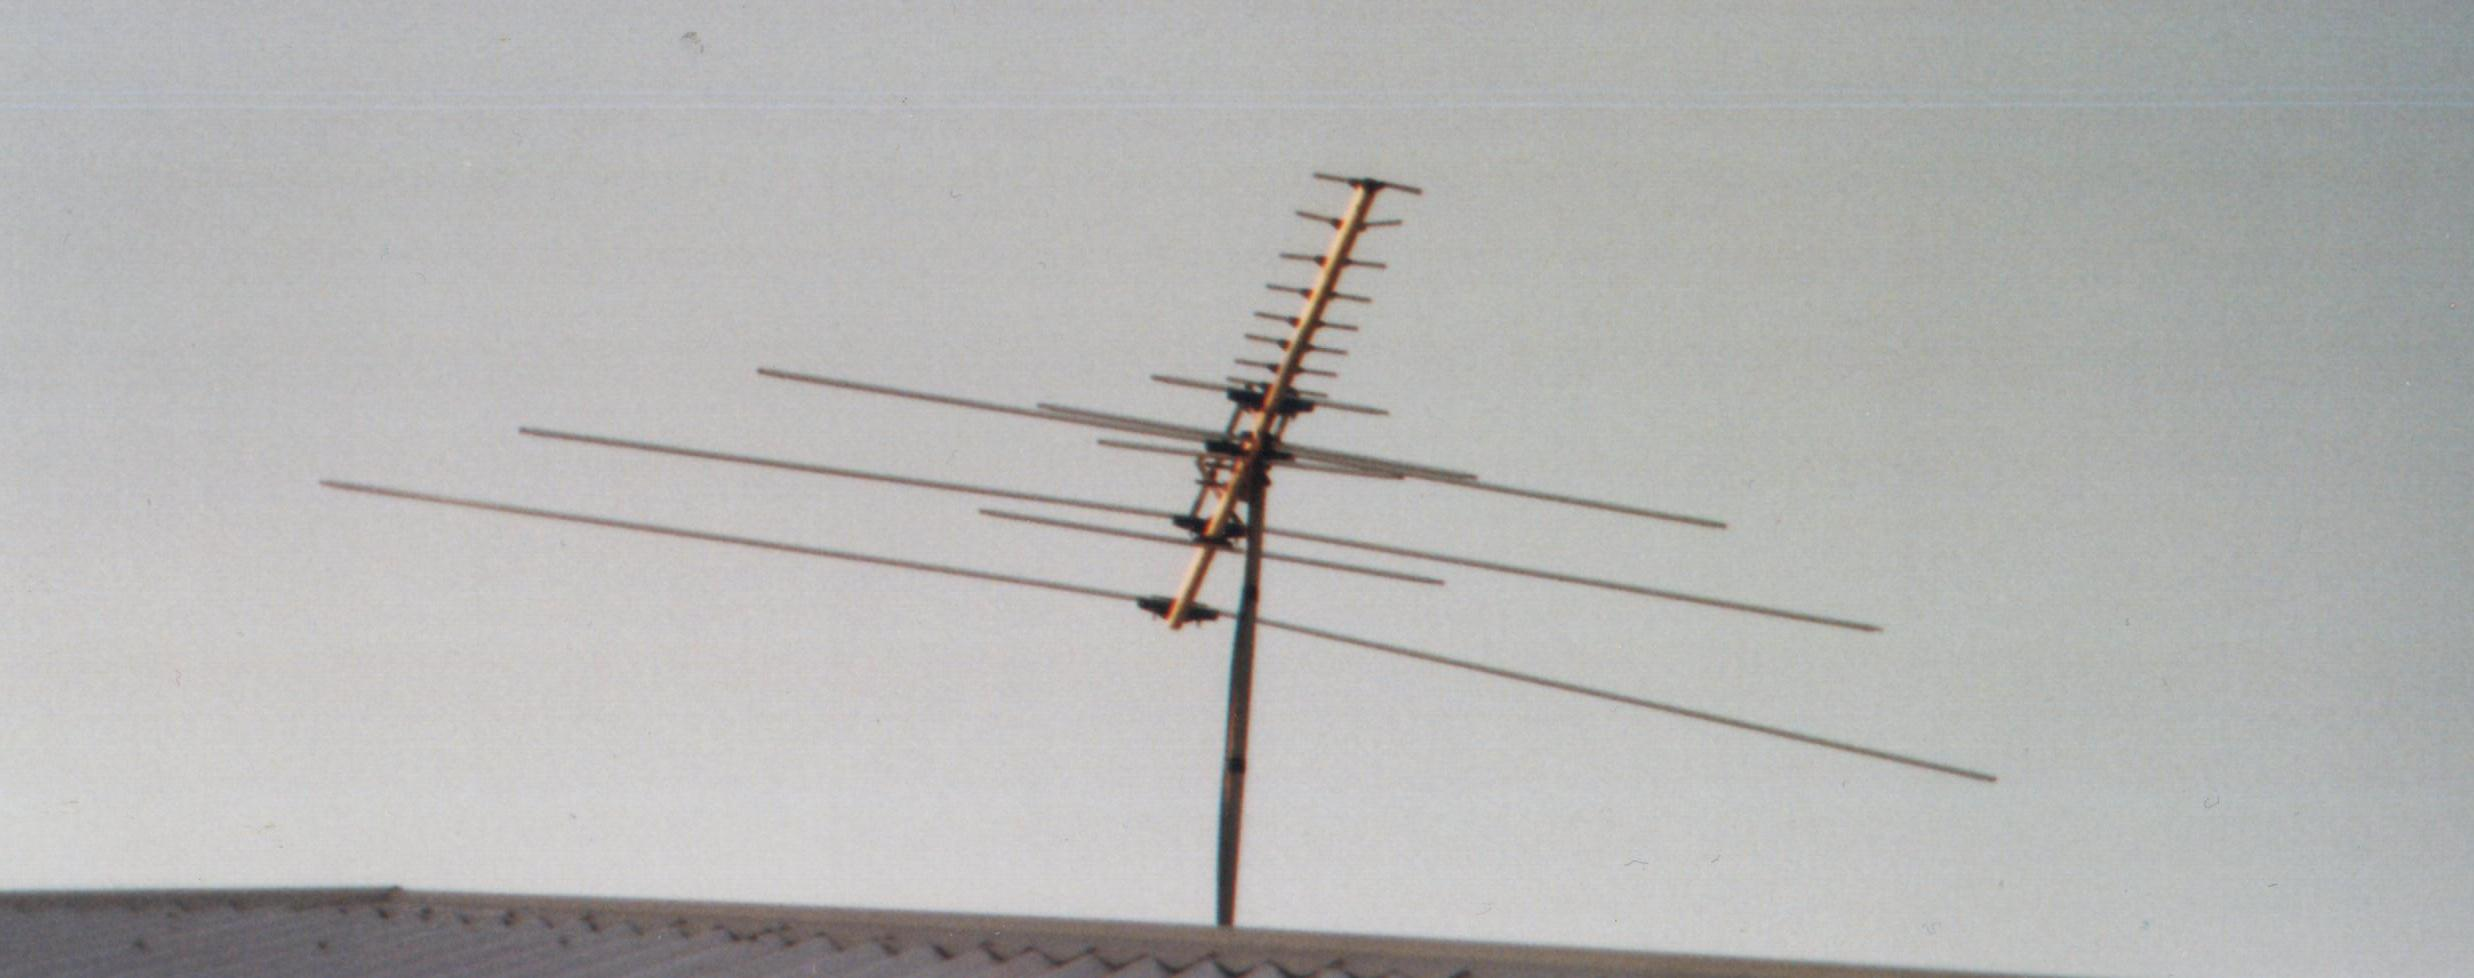 Closeup of NAS 16 Element Combination Antenna for Bands 1-4